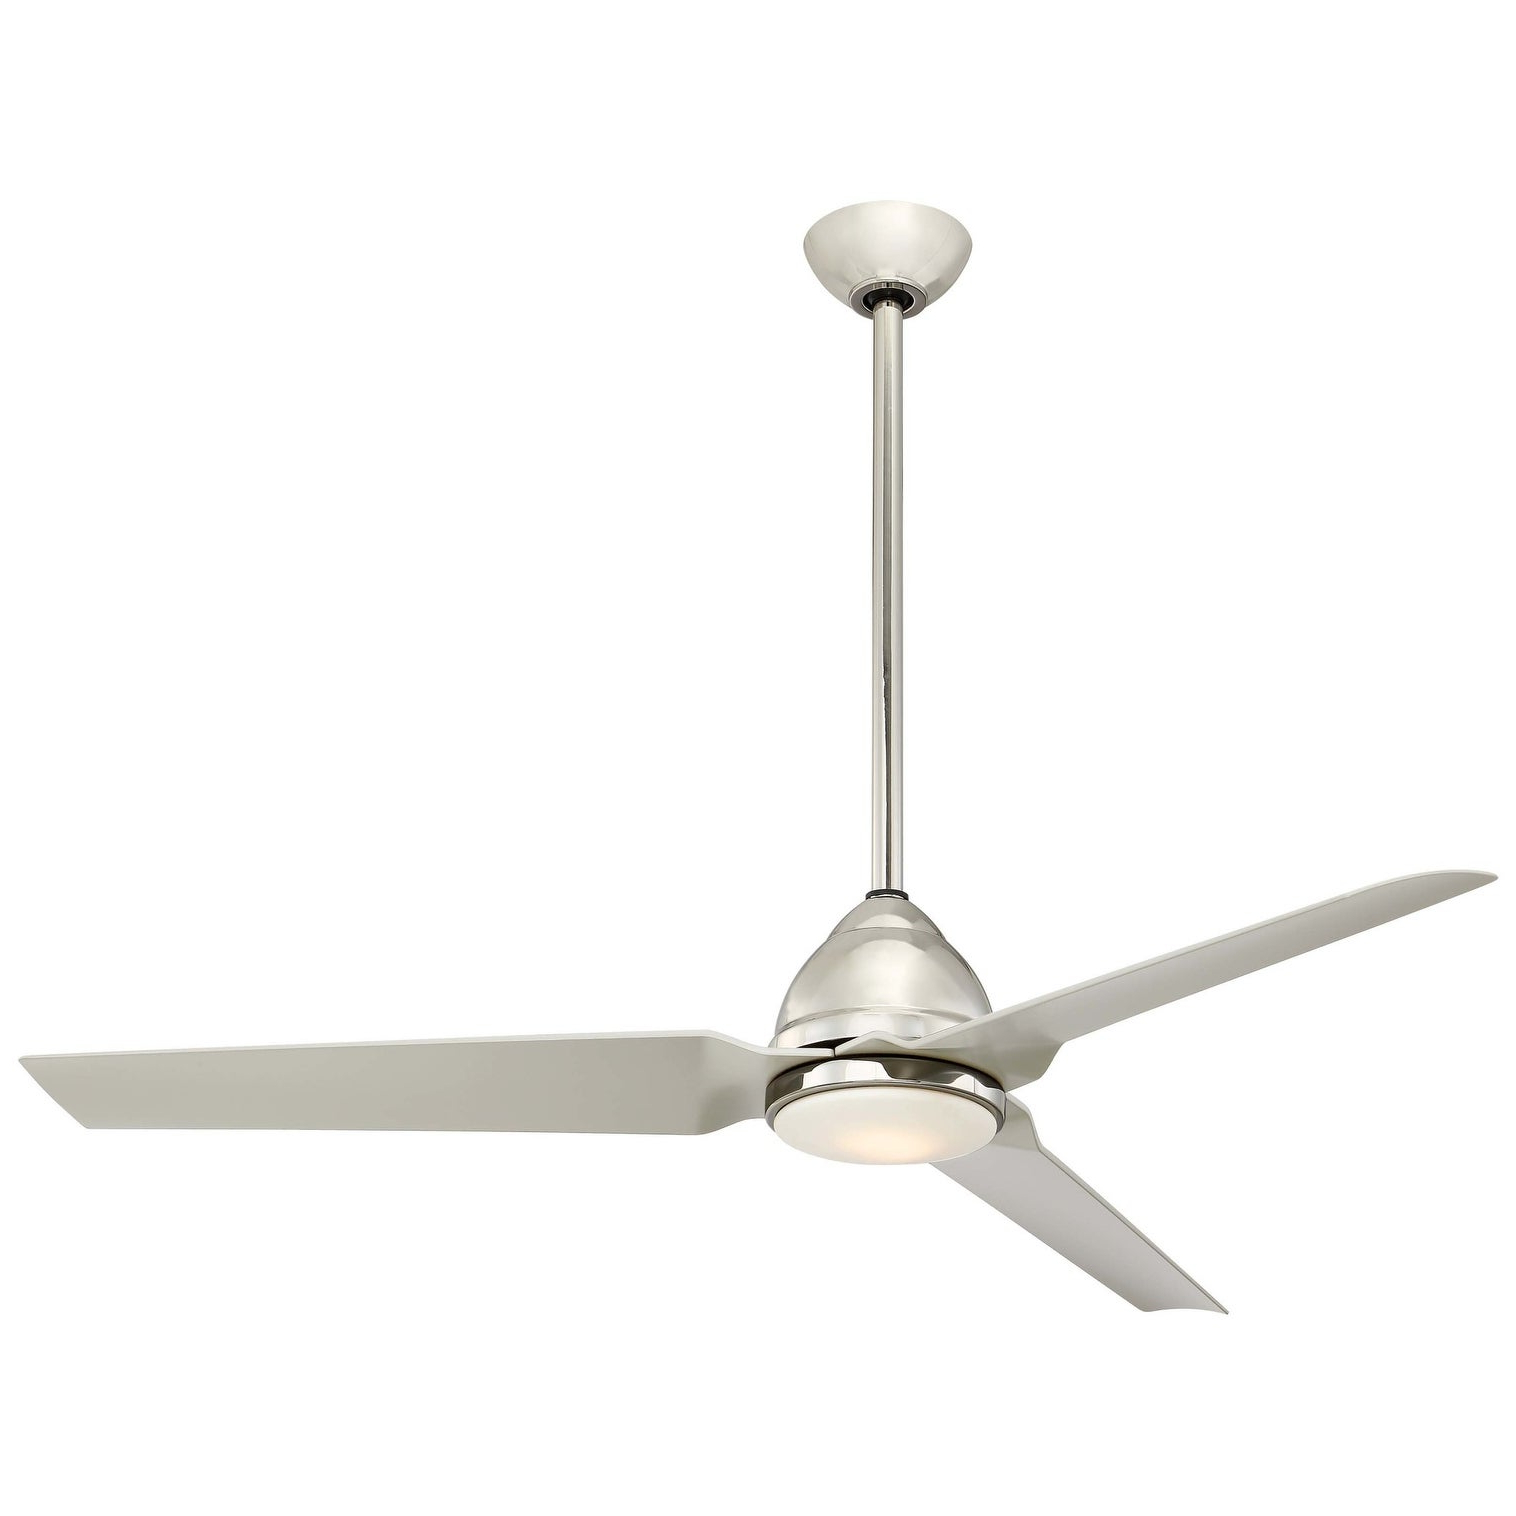 "Well Known Java 3 Blade Outdoor Ceiling Fans Throughout Minkaaire Java Led Java 54"" 3 Blade Indoor / Outdoor Led Ceiling Fan With  Remote Included (View 17 of 20)"